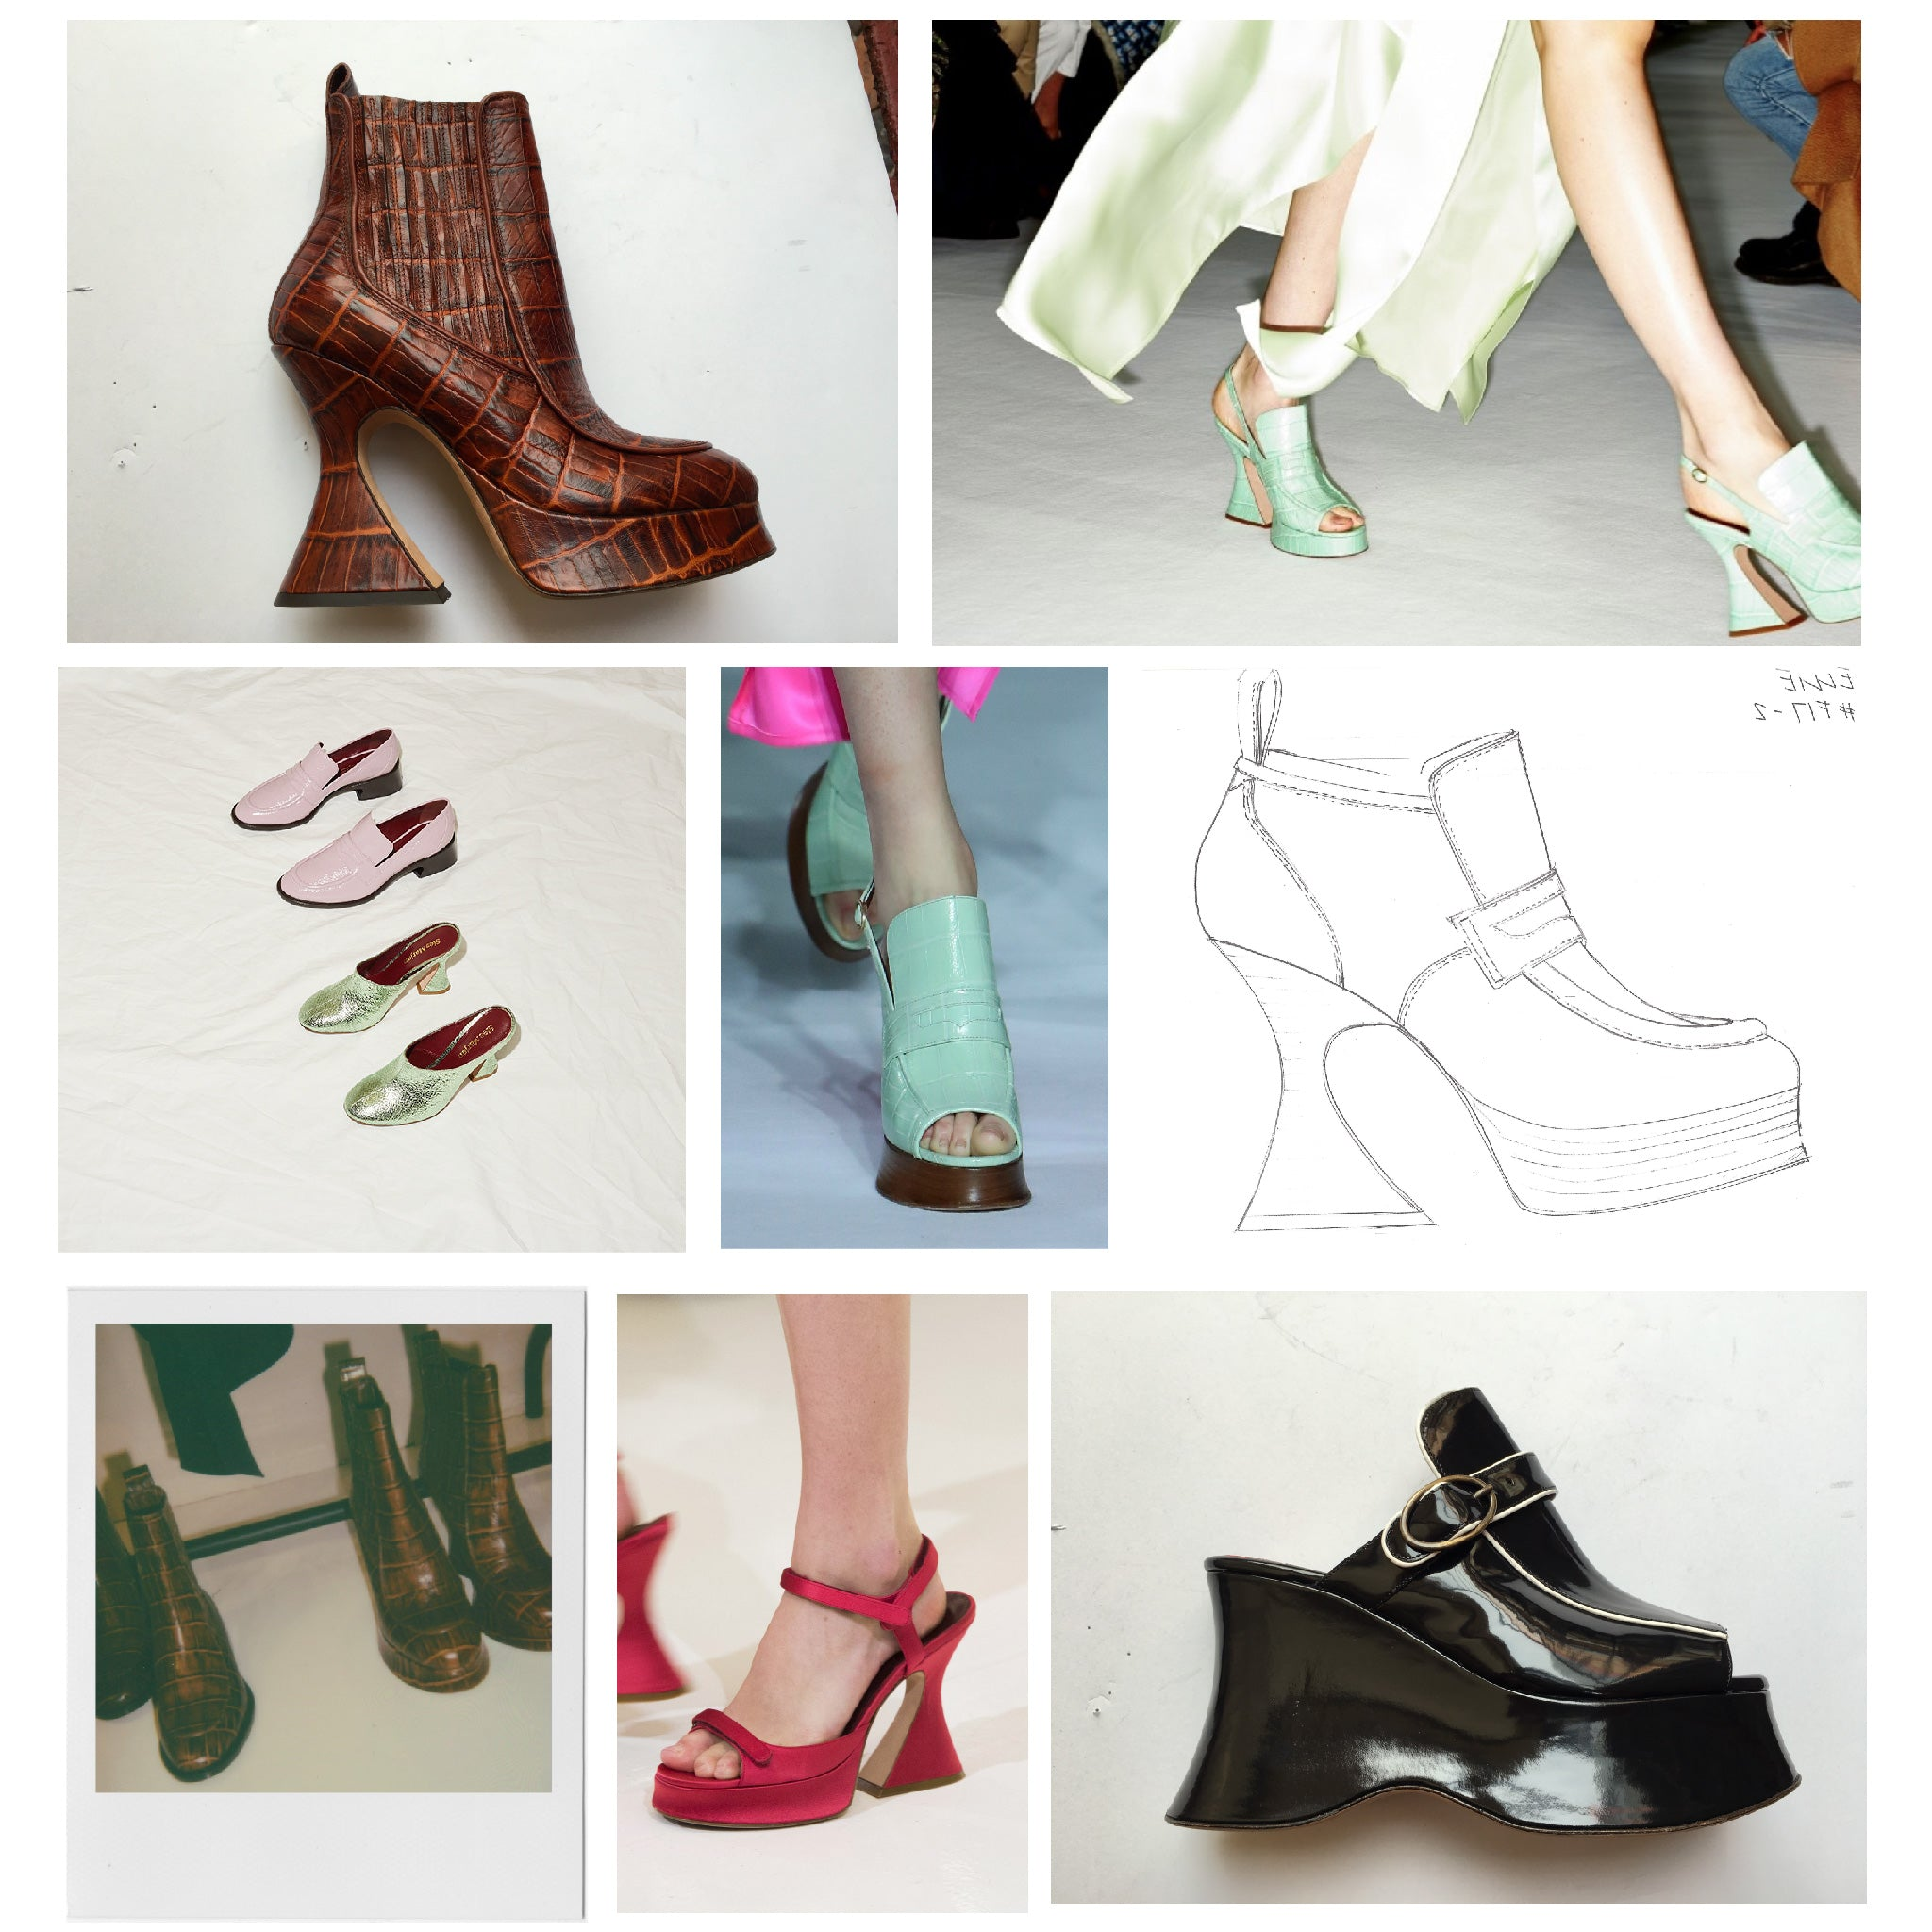 Images of pink, green and brown shoes with sketches next to them.